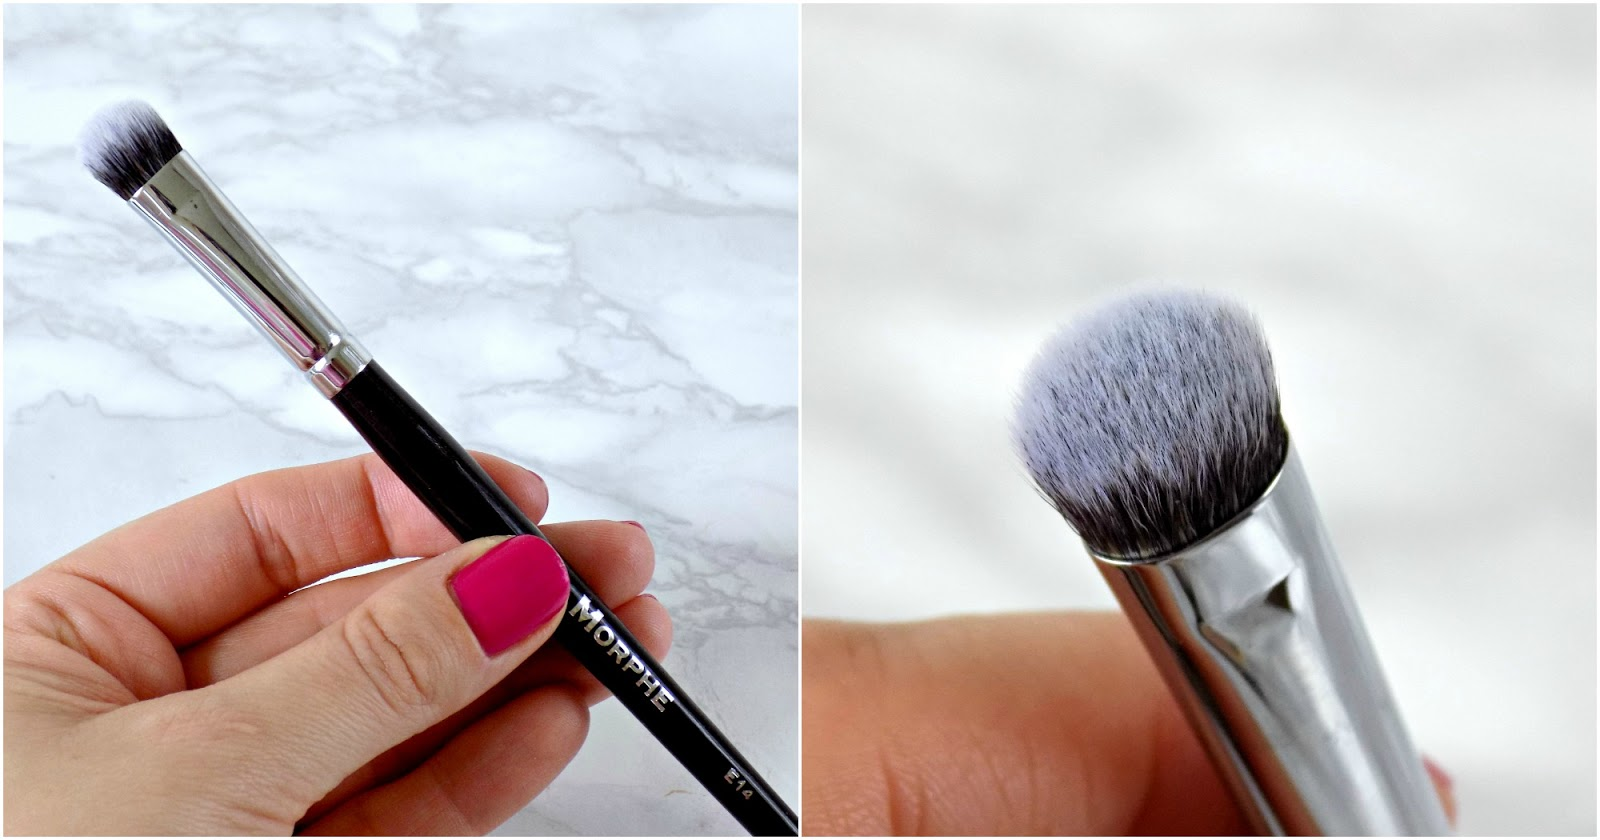 Morphe Brushes E14